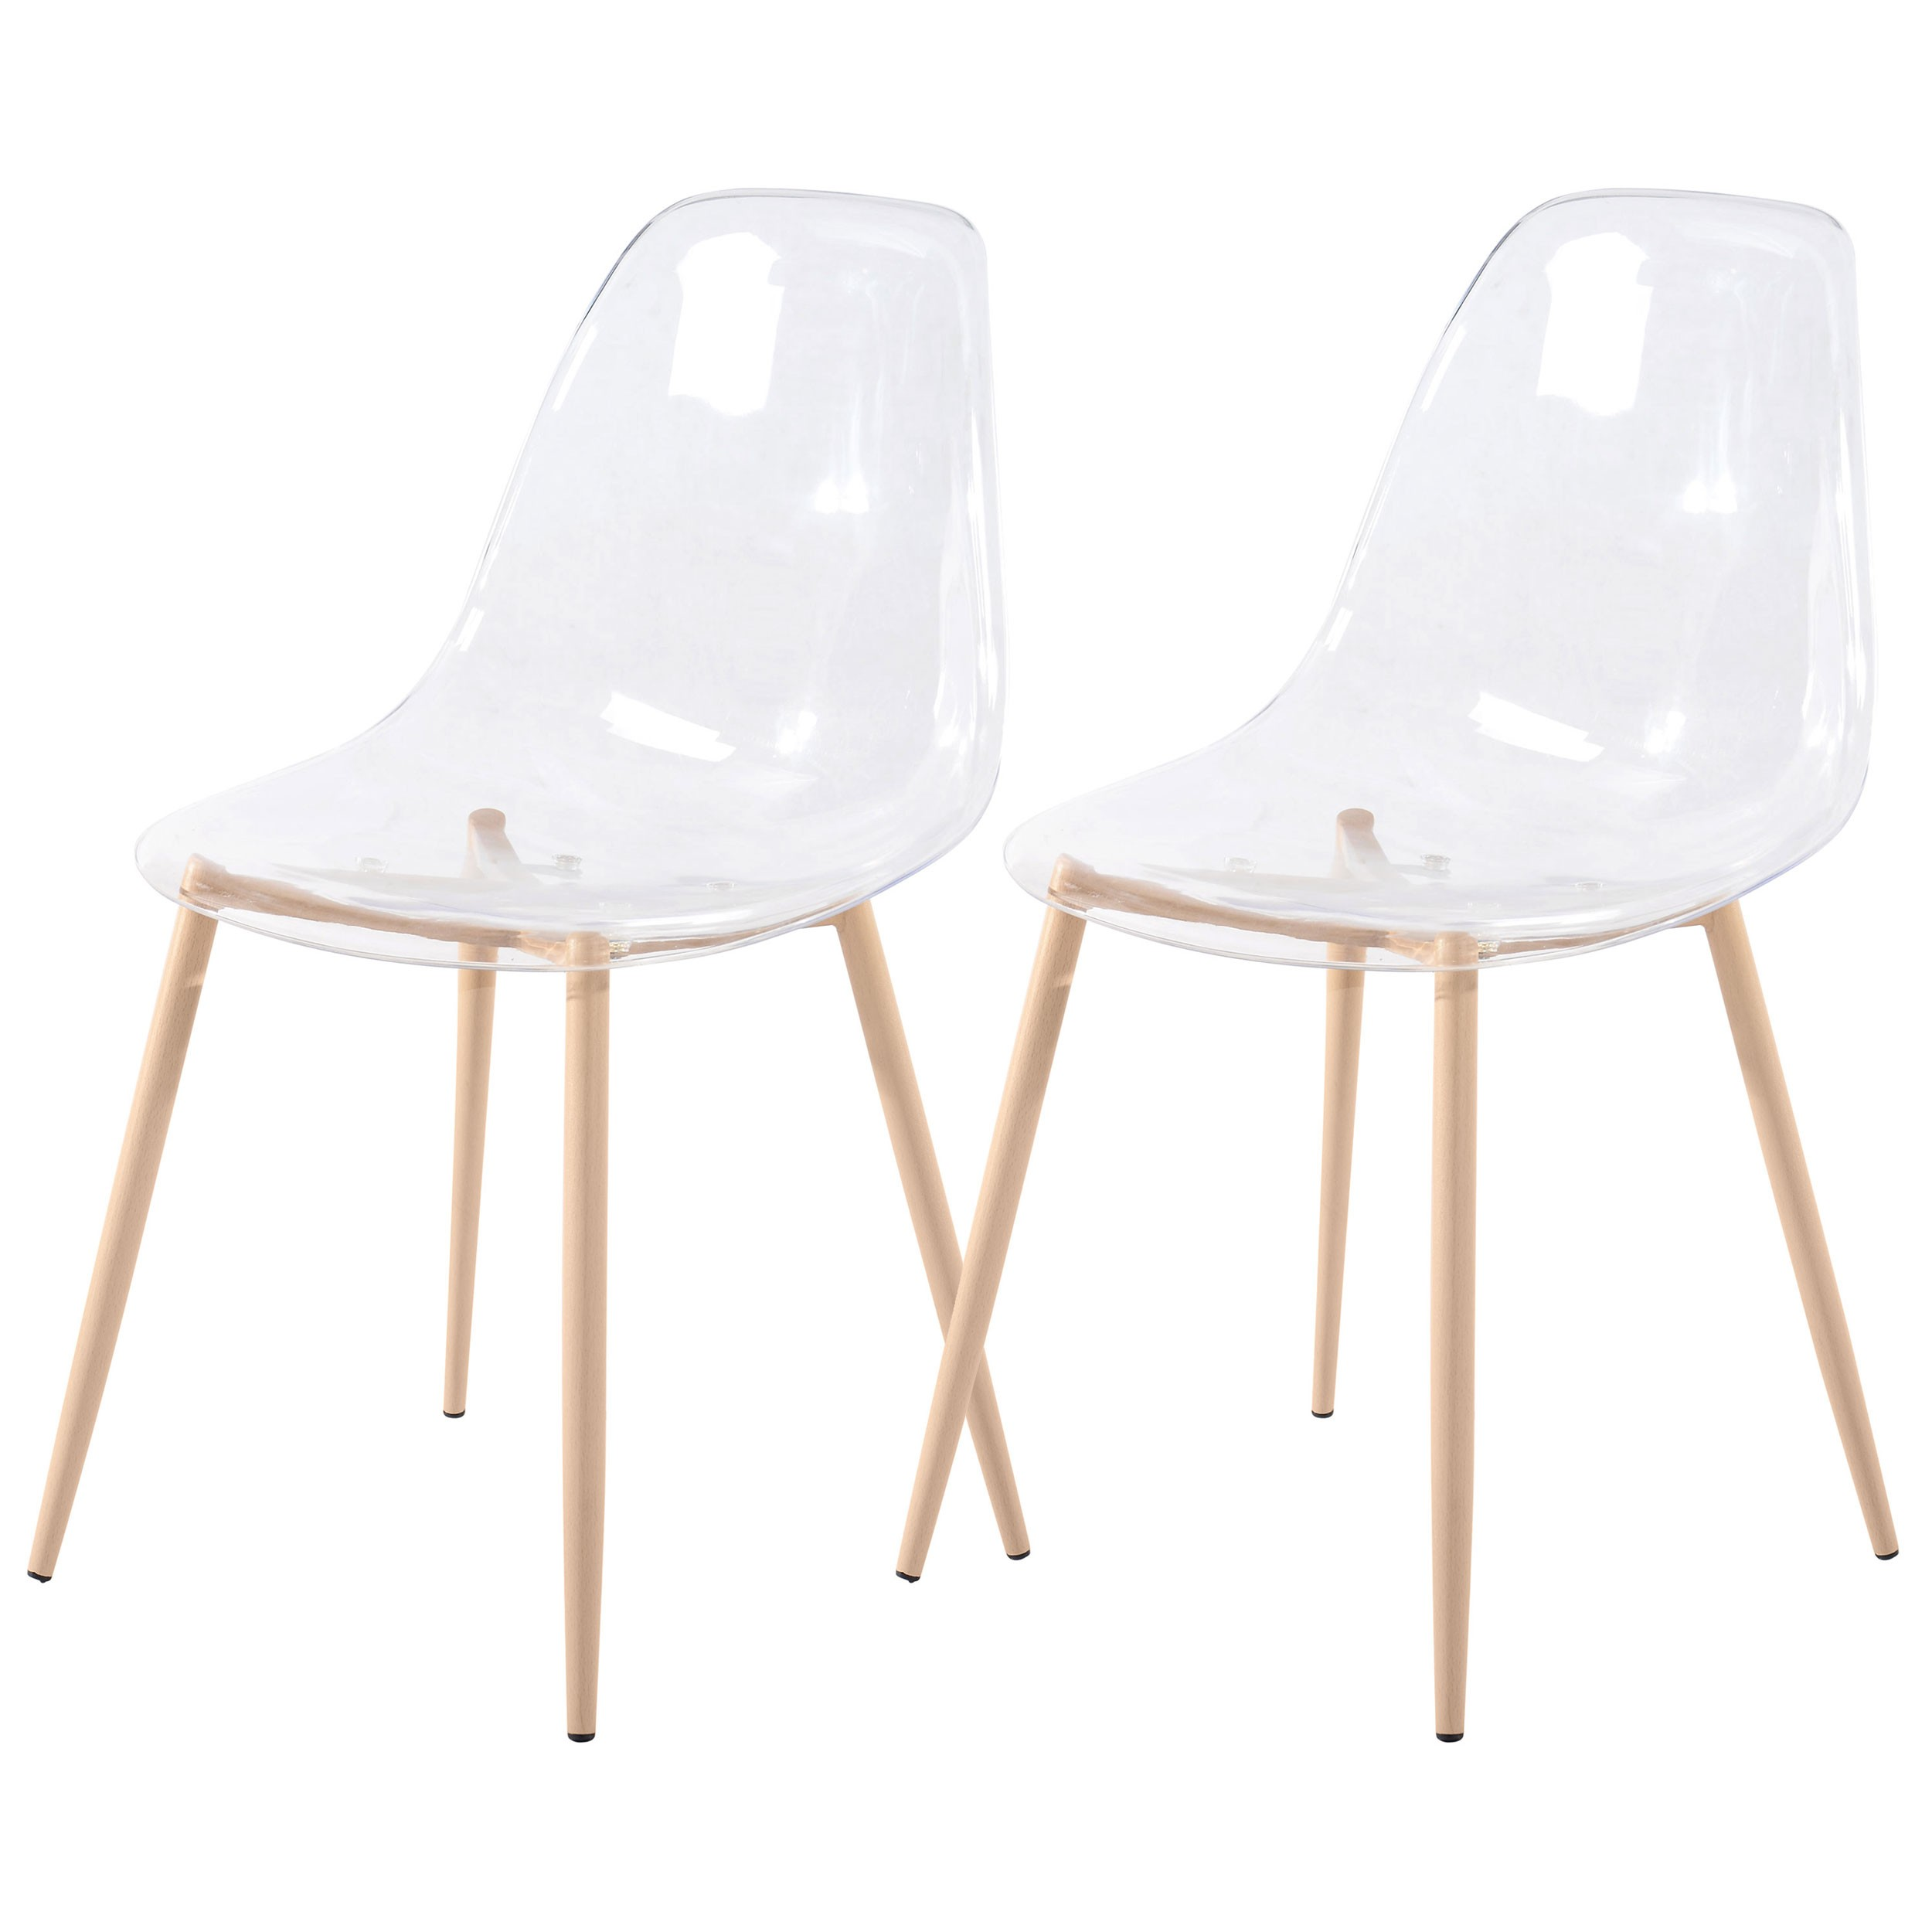 acheter chaise transparente scandinave - Chaises Scandinaves Transparentes